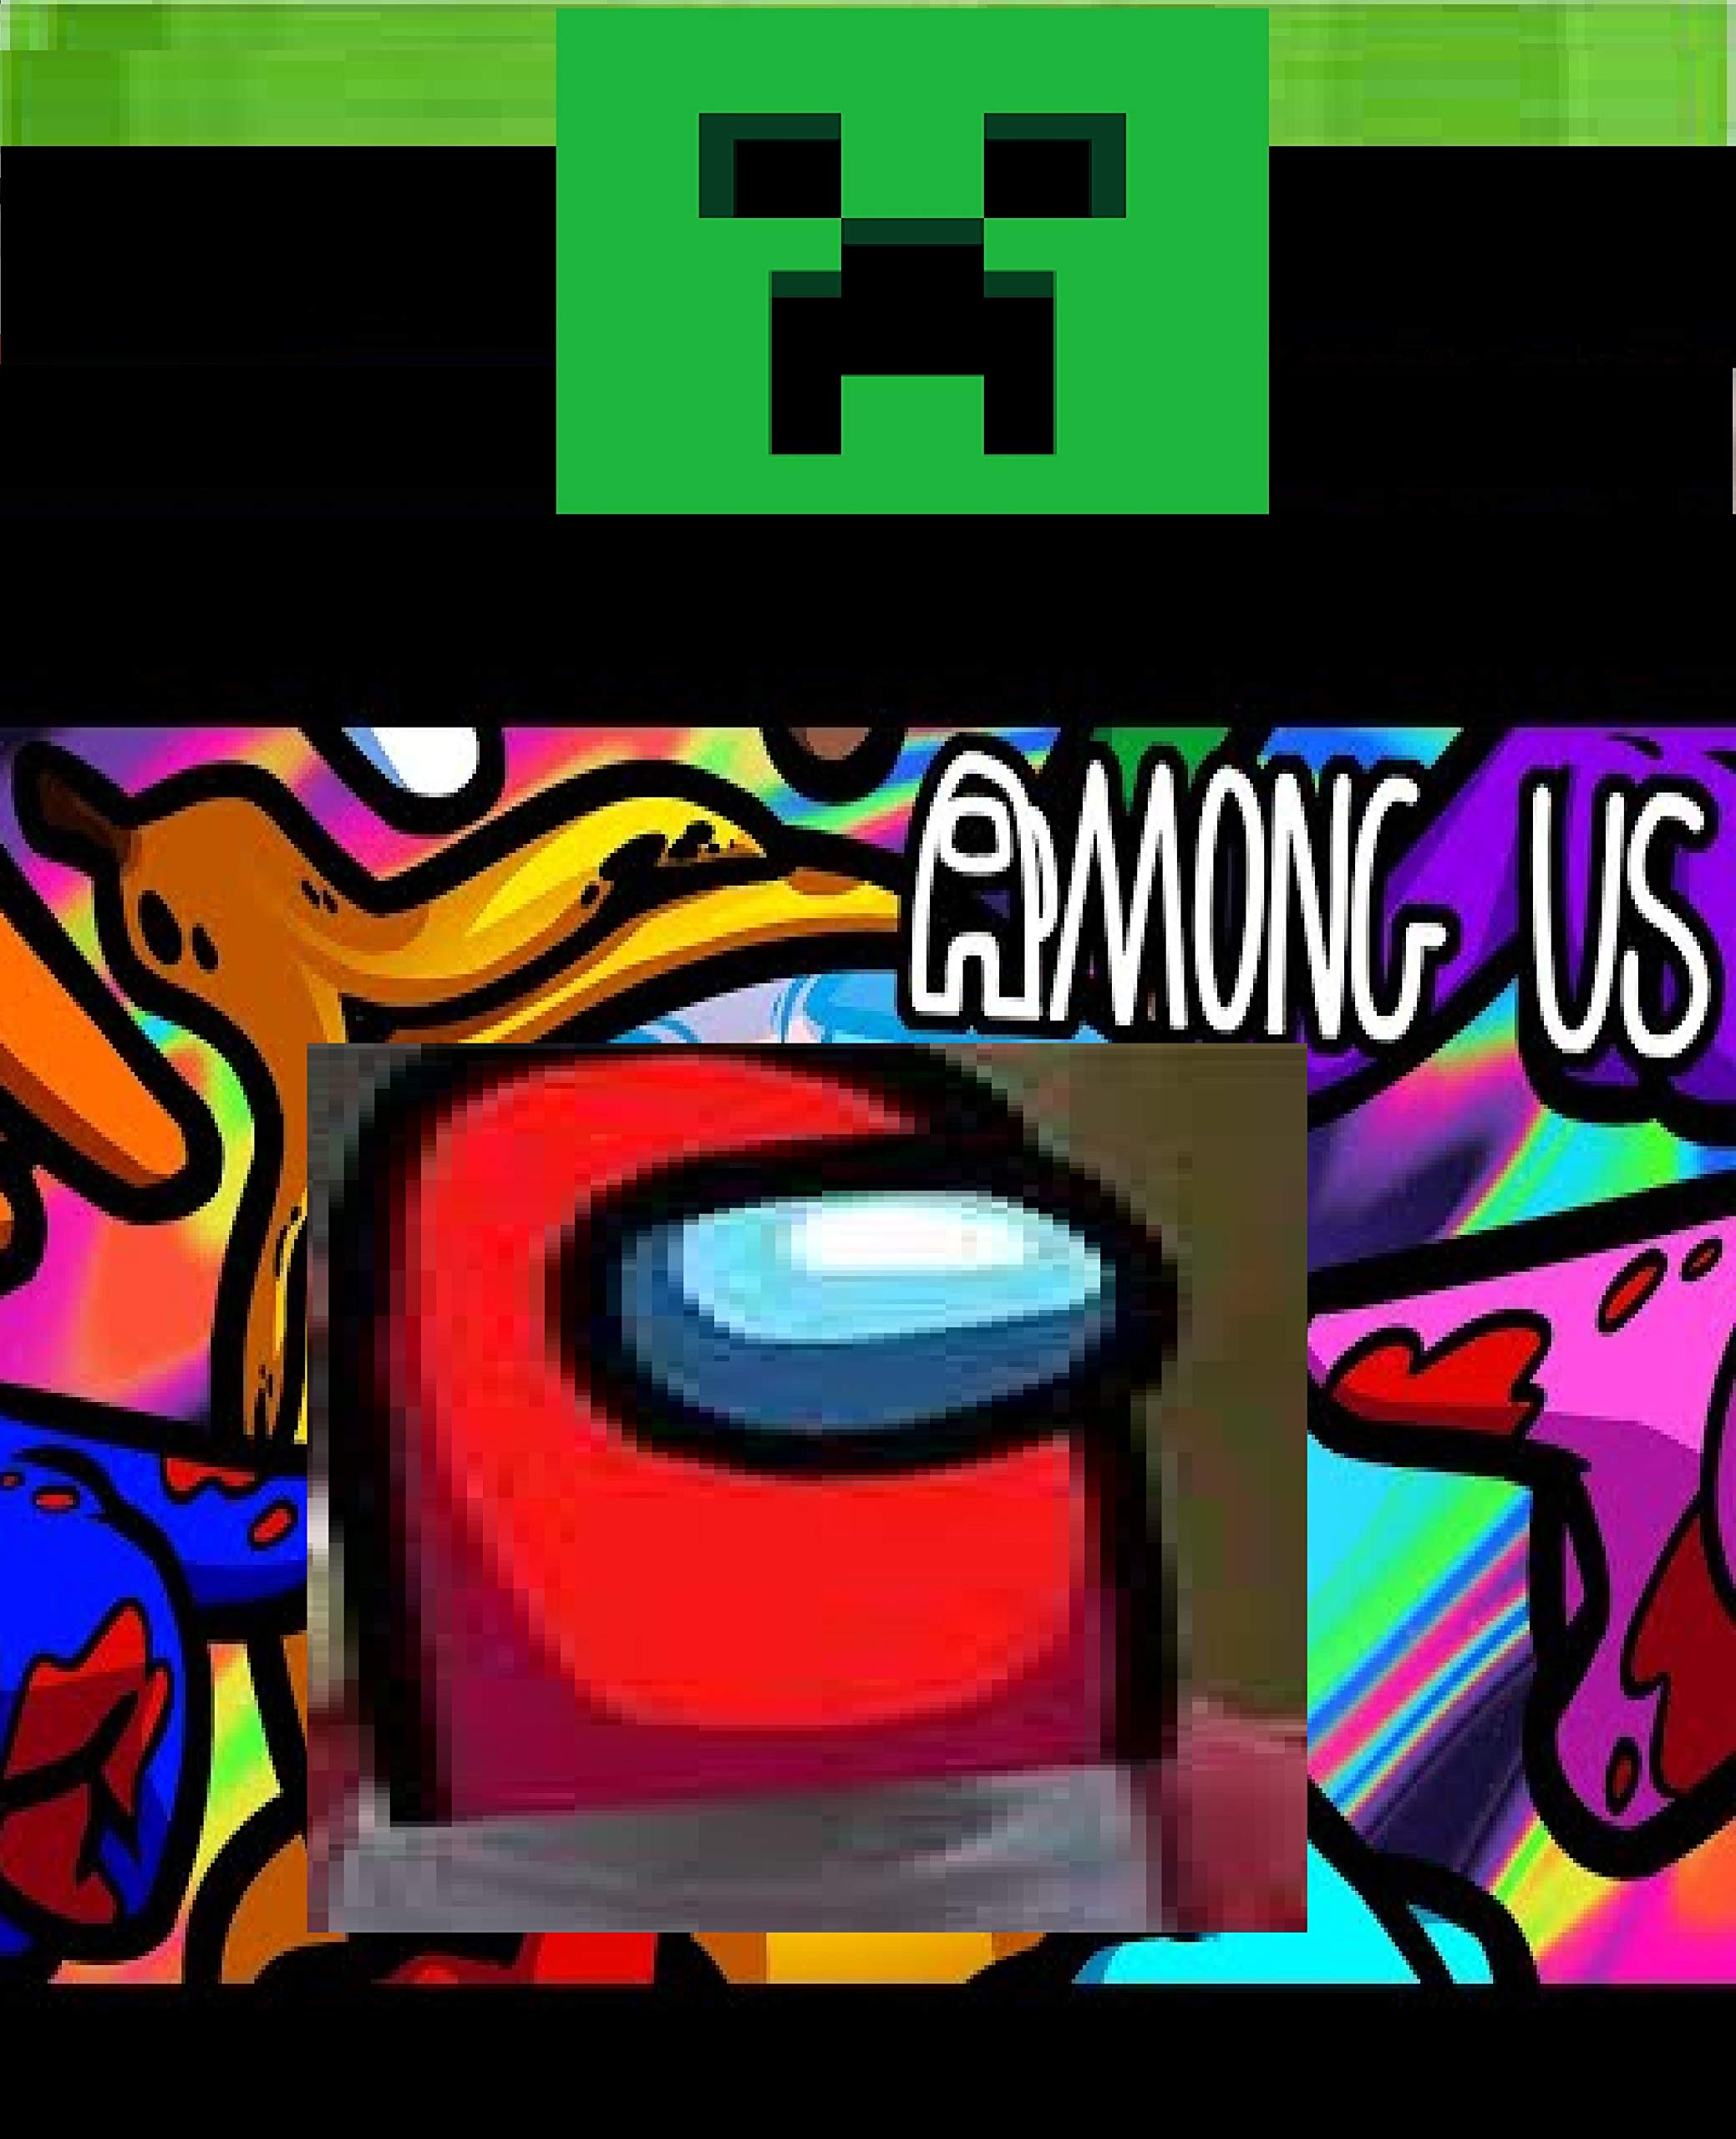 AMONG US CHAT Fun - Clean Jokes, Fun pics and Epic Fails 2020 (Humor Lab)book : Epic Funny minecraft: A Christmas Gaming Experiences and Comic gift Book, graphic novels, Build Ideas, Starter Base,